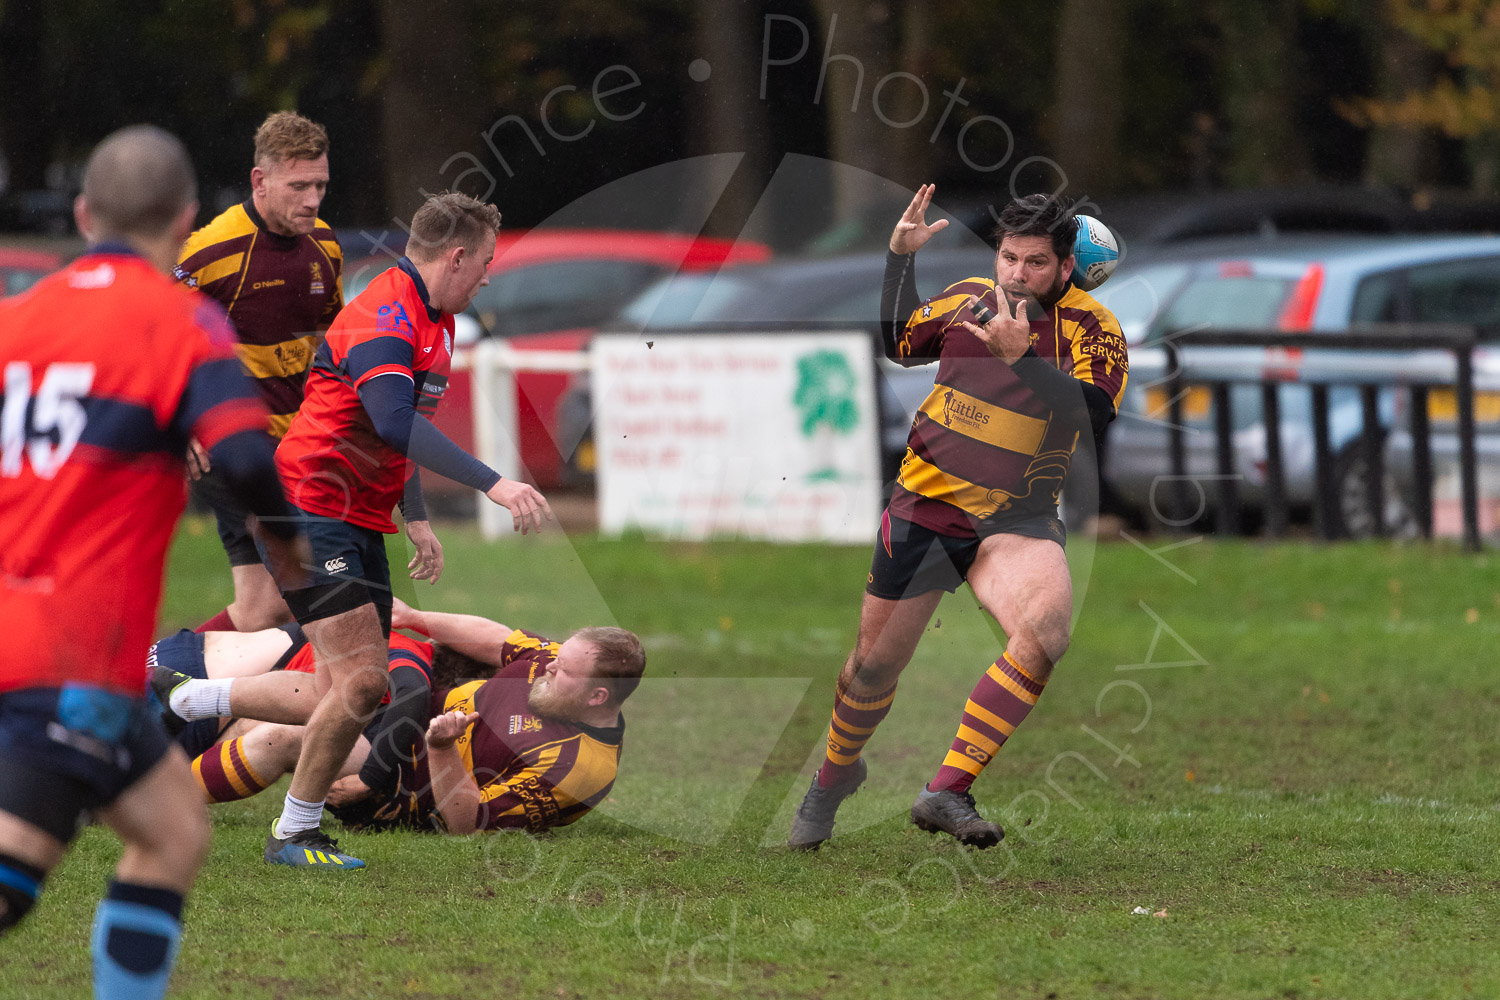 20181027 Amp Extras vs St Neots 2nd XV #2605